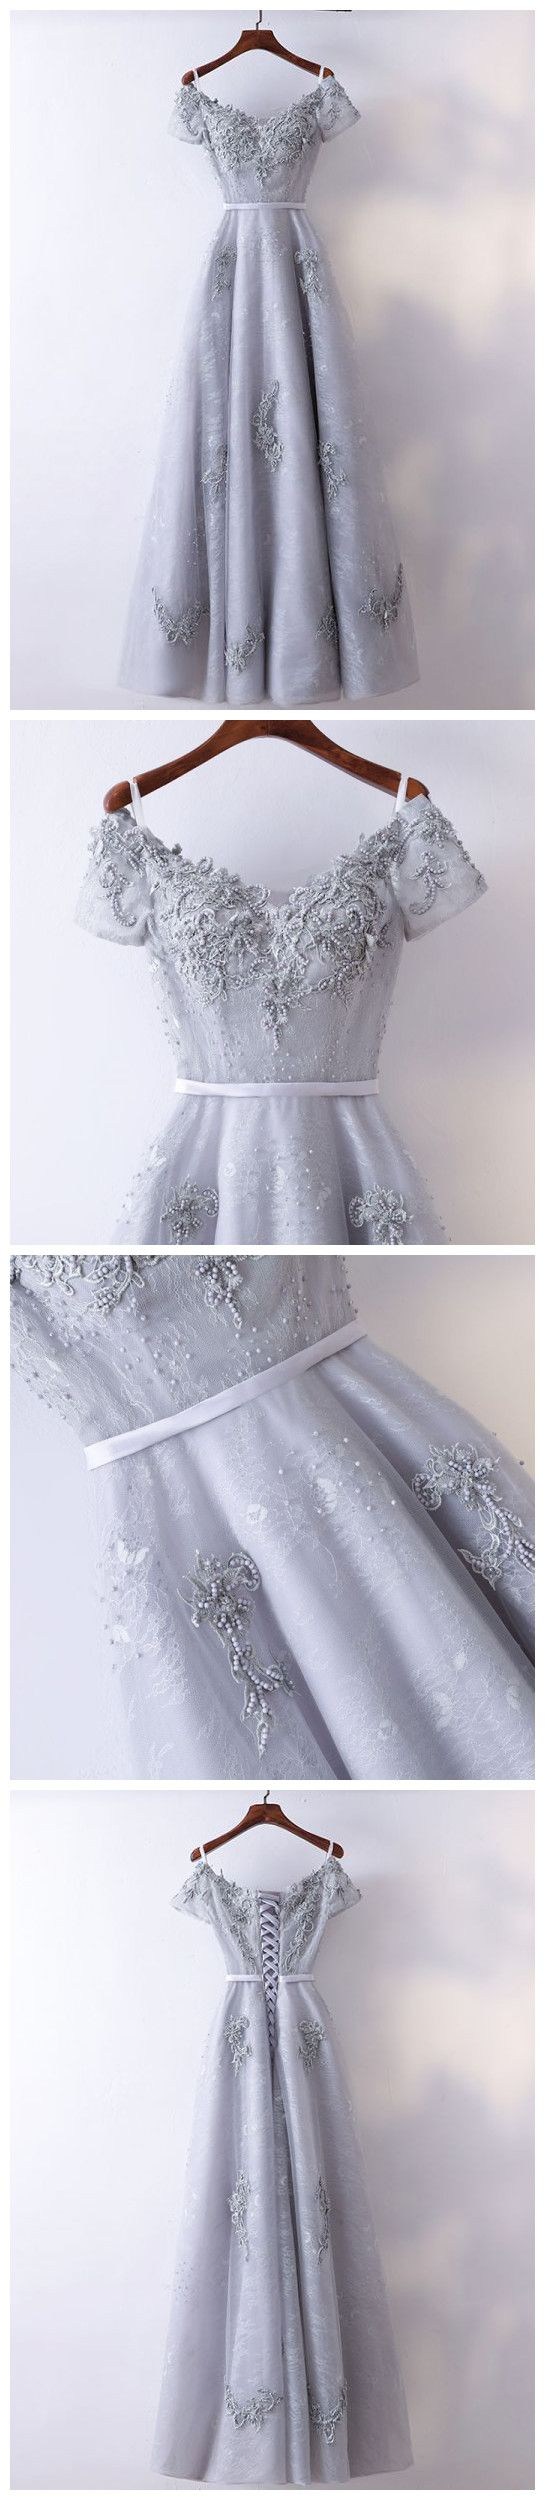 CHIC PROM DRESS,A LINE PROM DRESS,CHEAP PROM DRESS,BEAUTIFUL  PROM DRESS,OFF-THE-SHOULDER PROM DRESS, TULLE PROM DRESS,MODEST PROM DRESS,SILVER PROM DRESS,LONG PROM DRESS ,EVENING DRESS AM724 #amyprom  #fashion #party #evening #chic #promdresslong #longpromdress #formaldress #modestprom